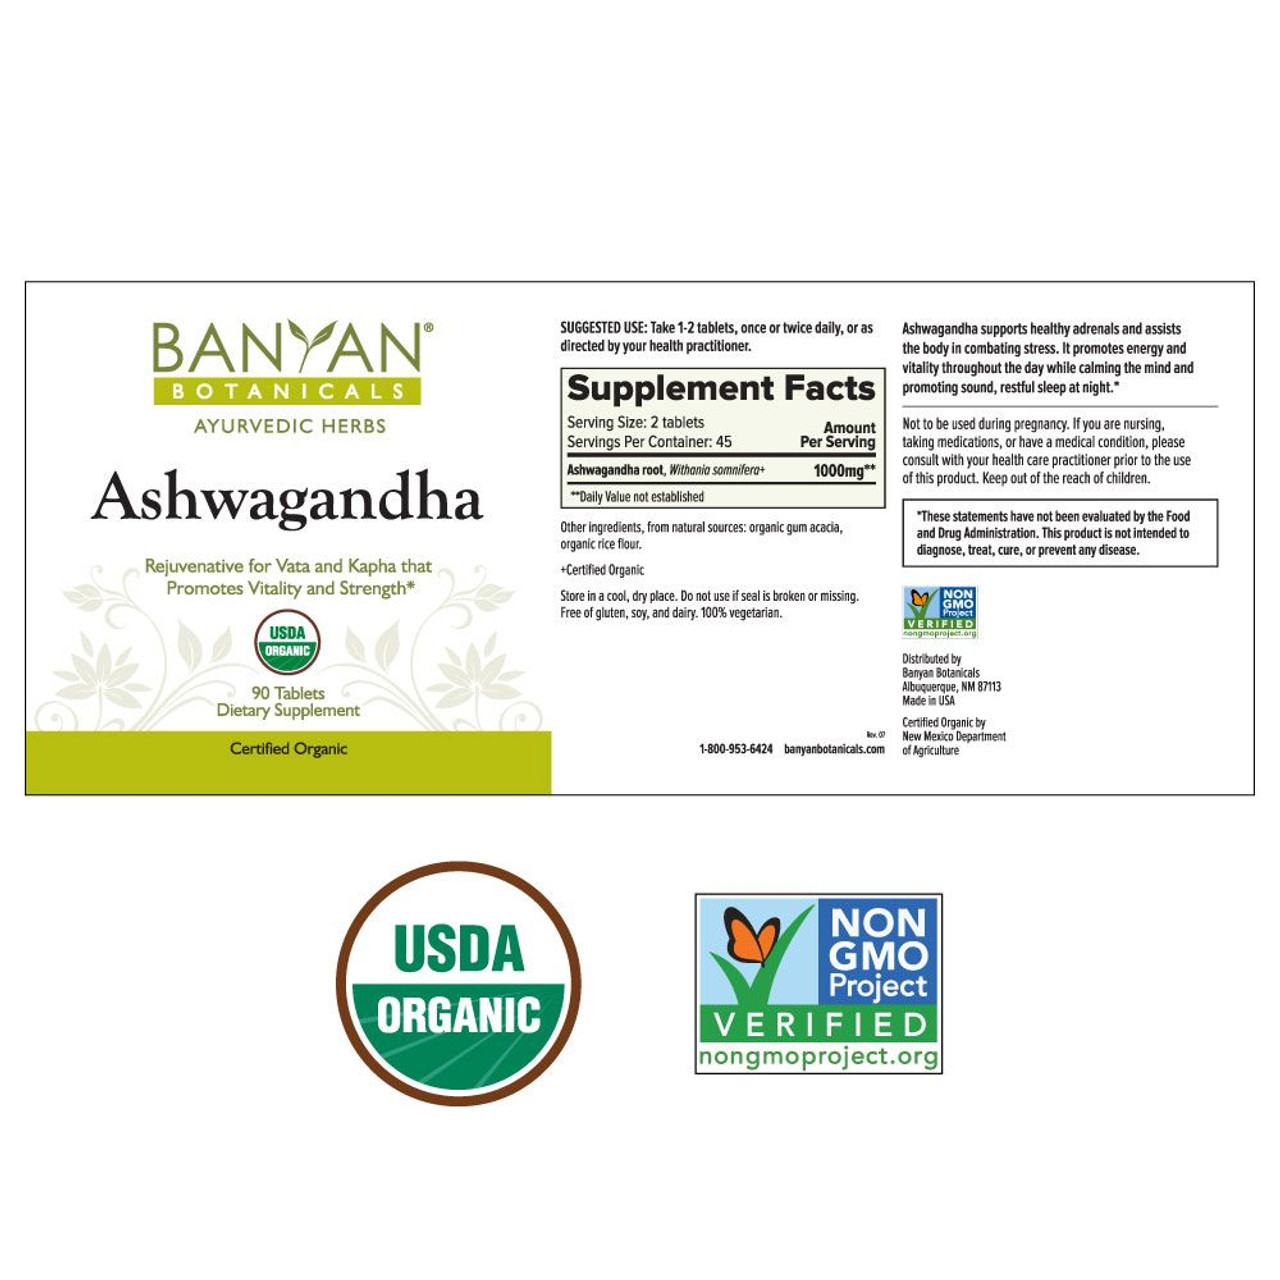 Banyan Botanicals Ashwagandha (Organic) 500 mg ingredients